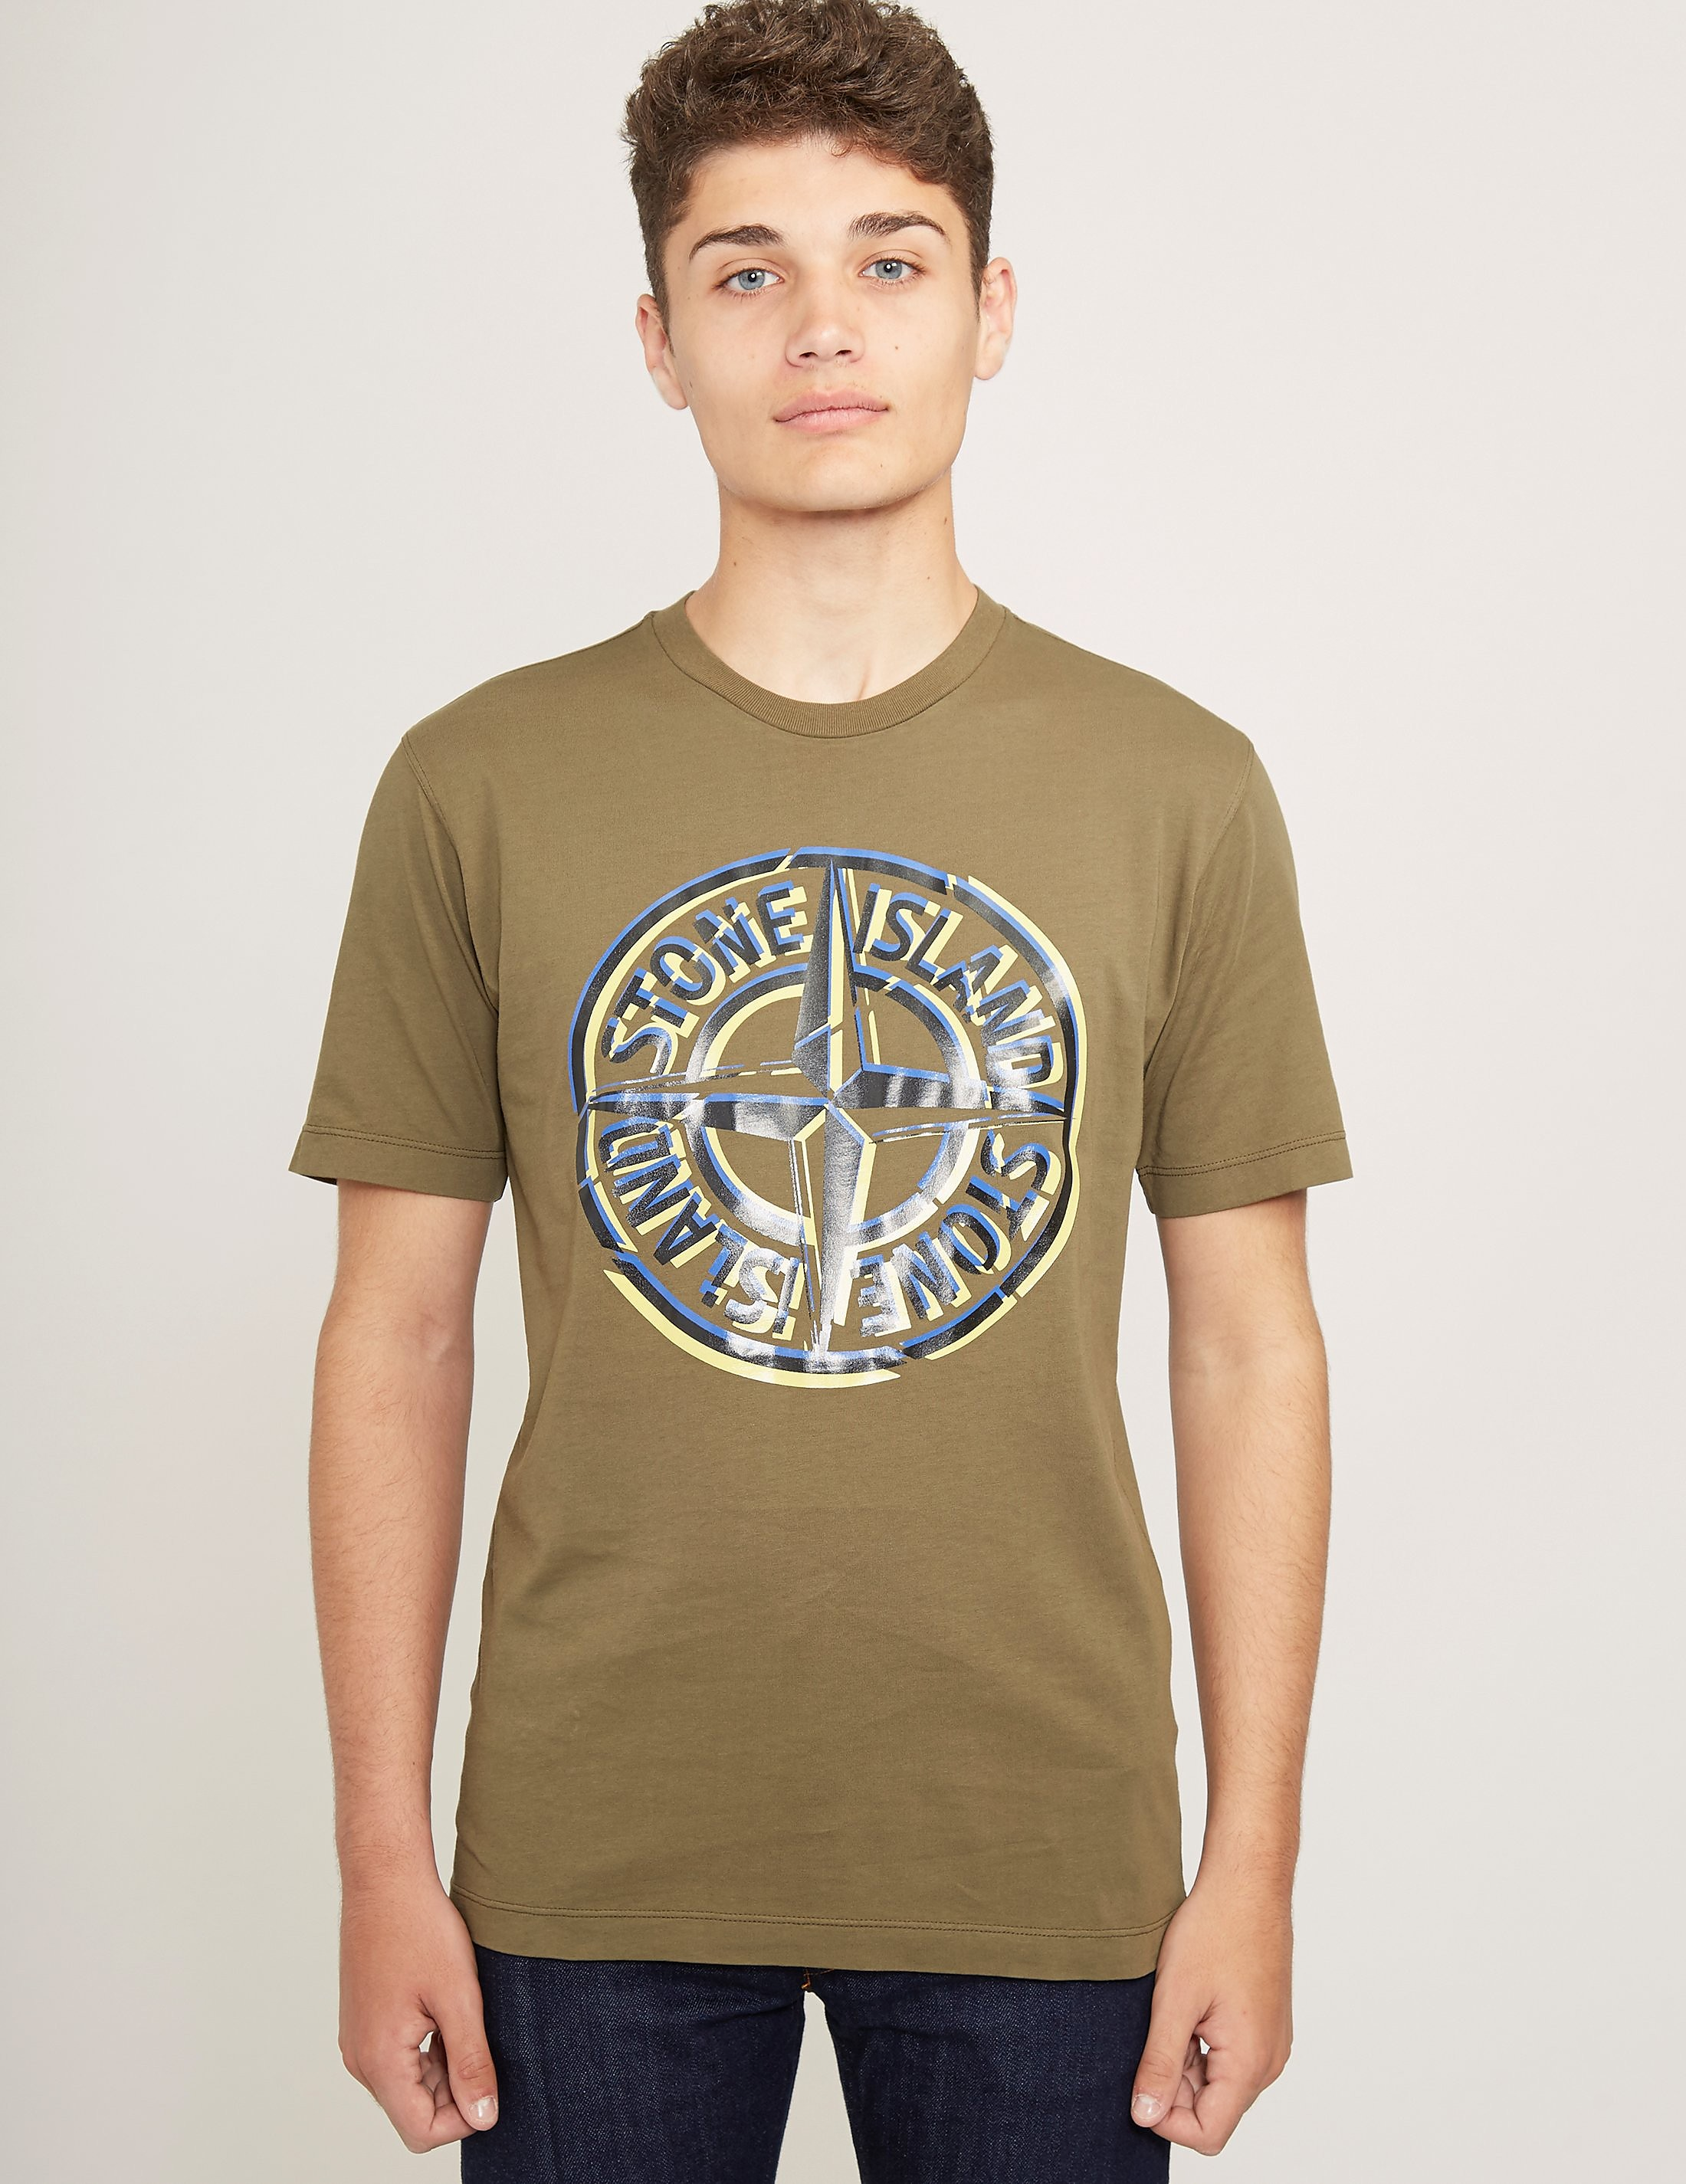 Stone Island Pin Short Sleeve T-Shirt